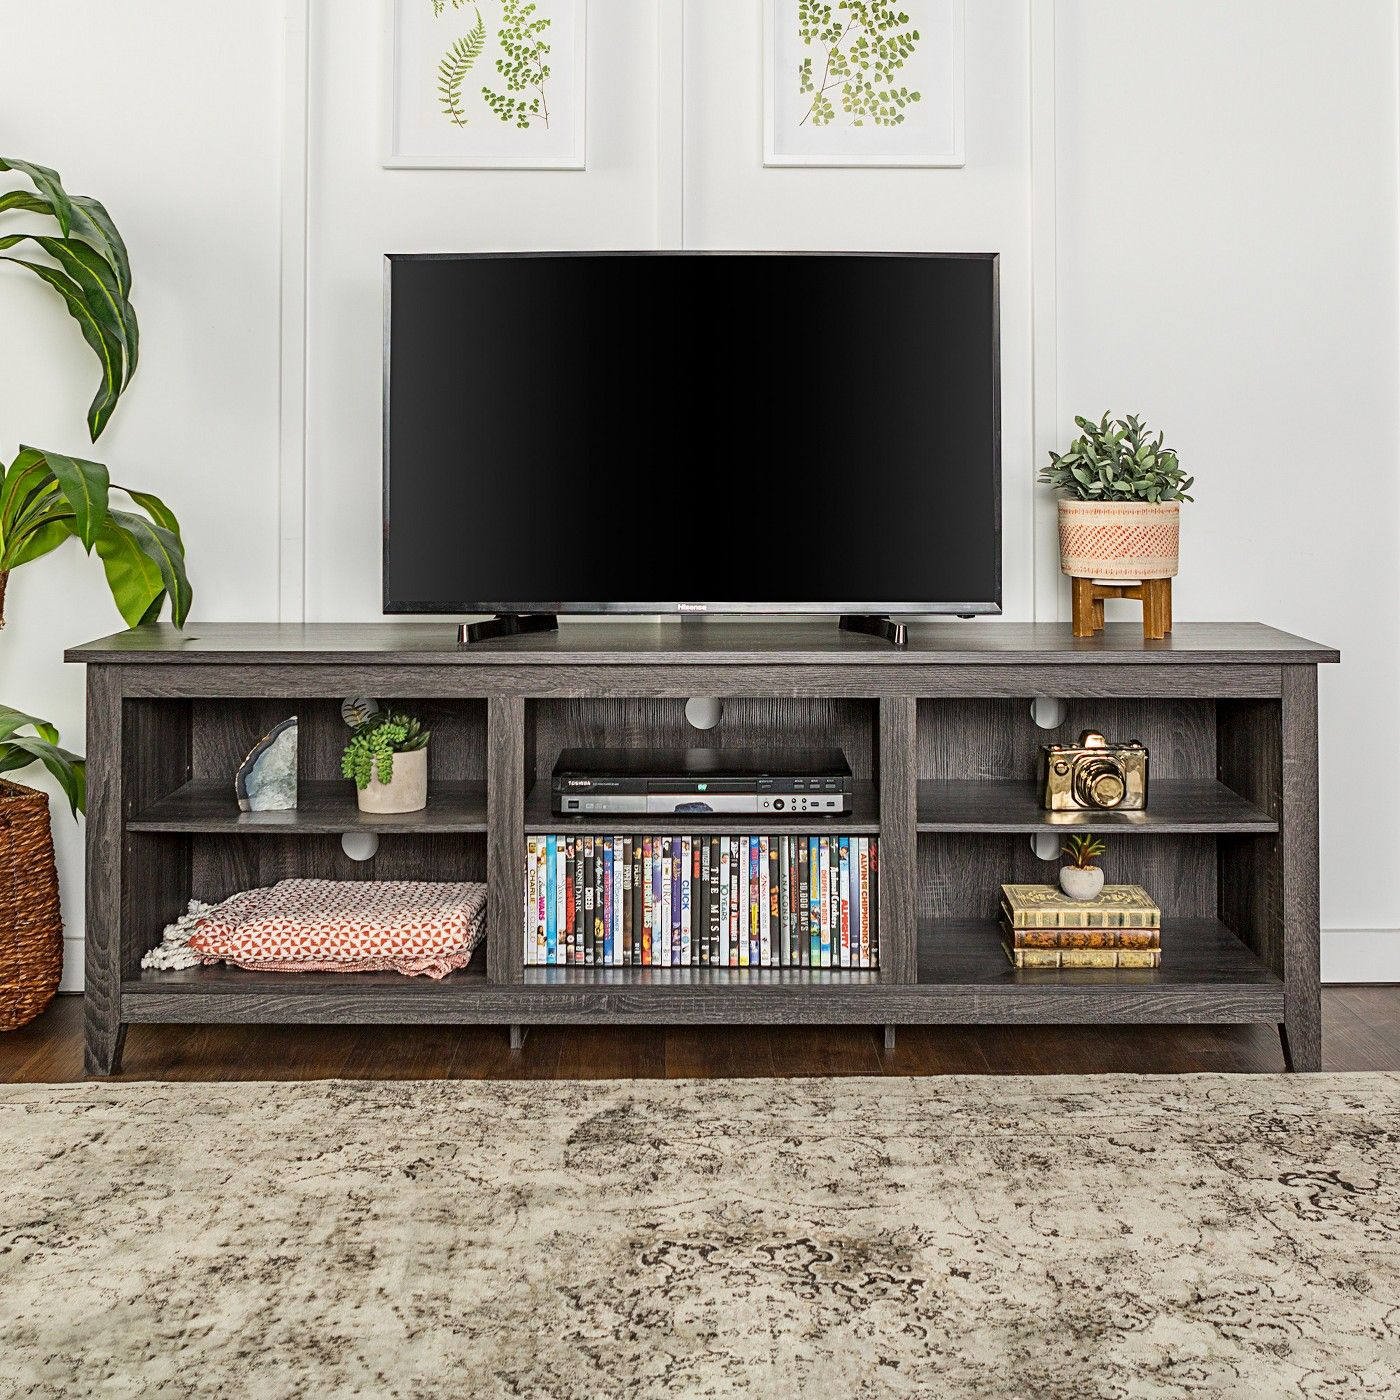 Wood Media Storage Console Tv Stand For Tvs Up To 80 Charcoal Saracina Home Tv Stand Furniture Tv Stand Wood Tv Stand Decor